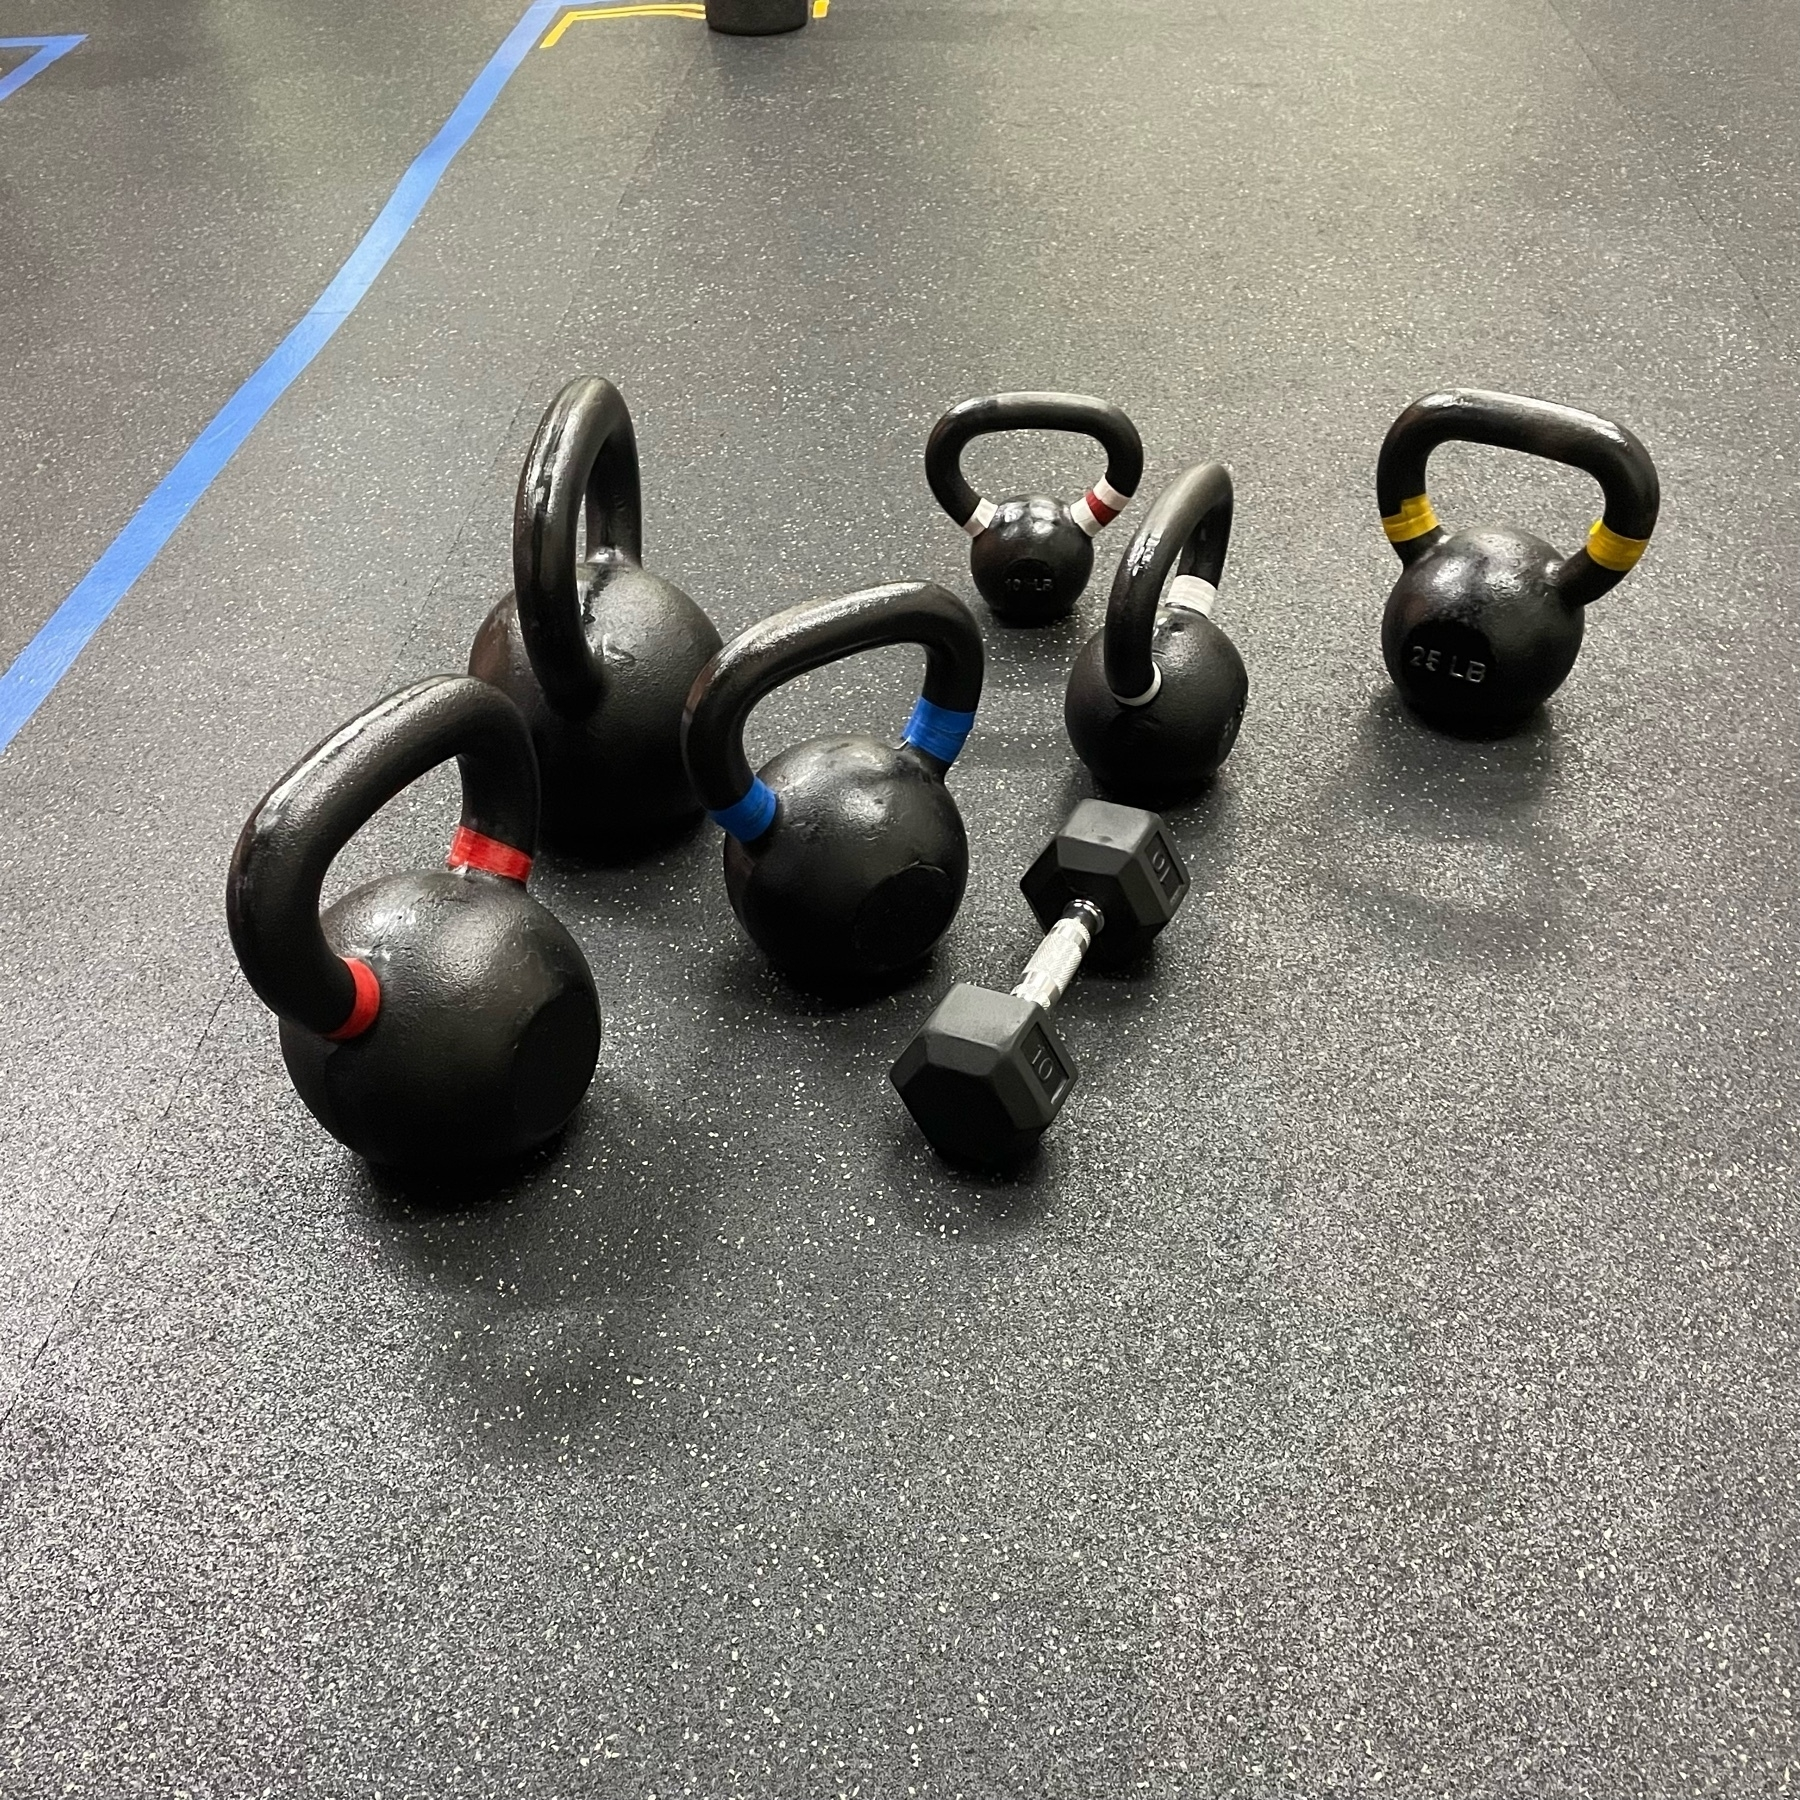 A collection of 6 kettlebells and a dumbell on the gym mat.